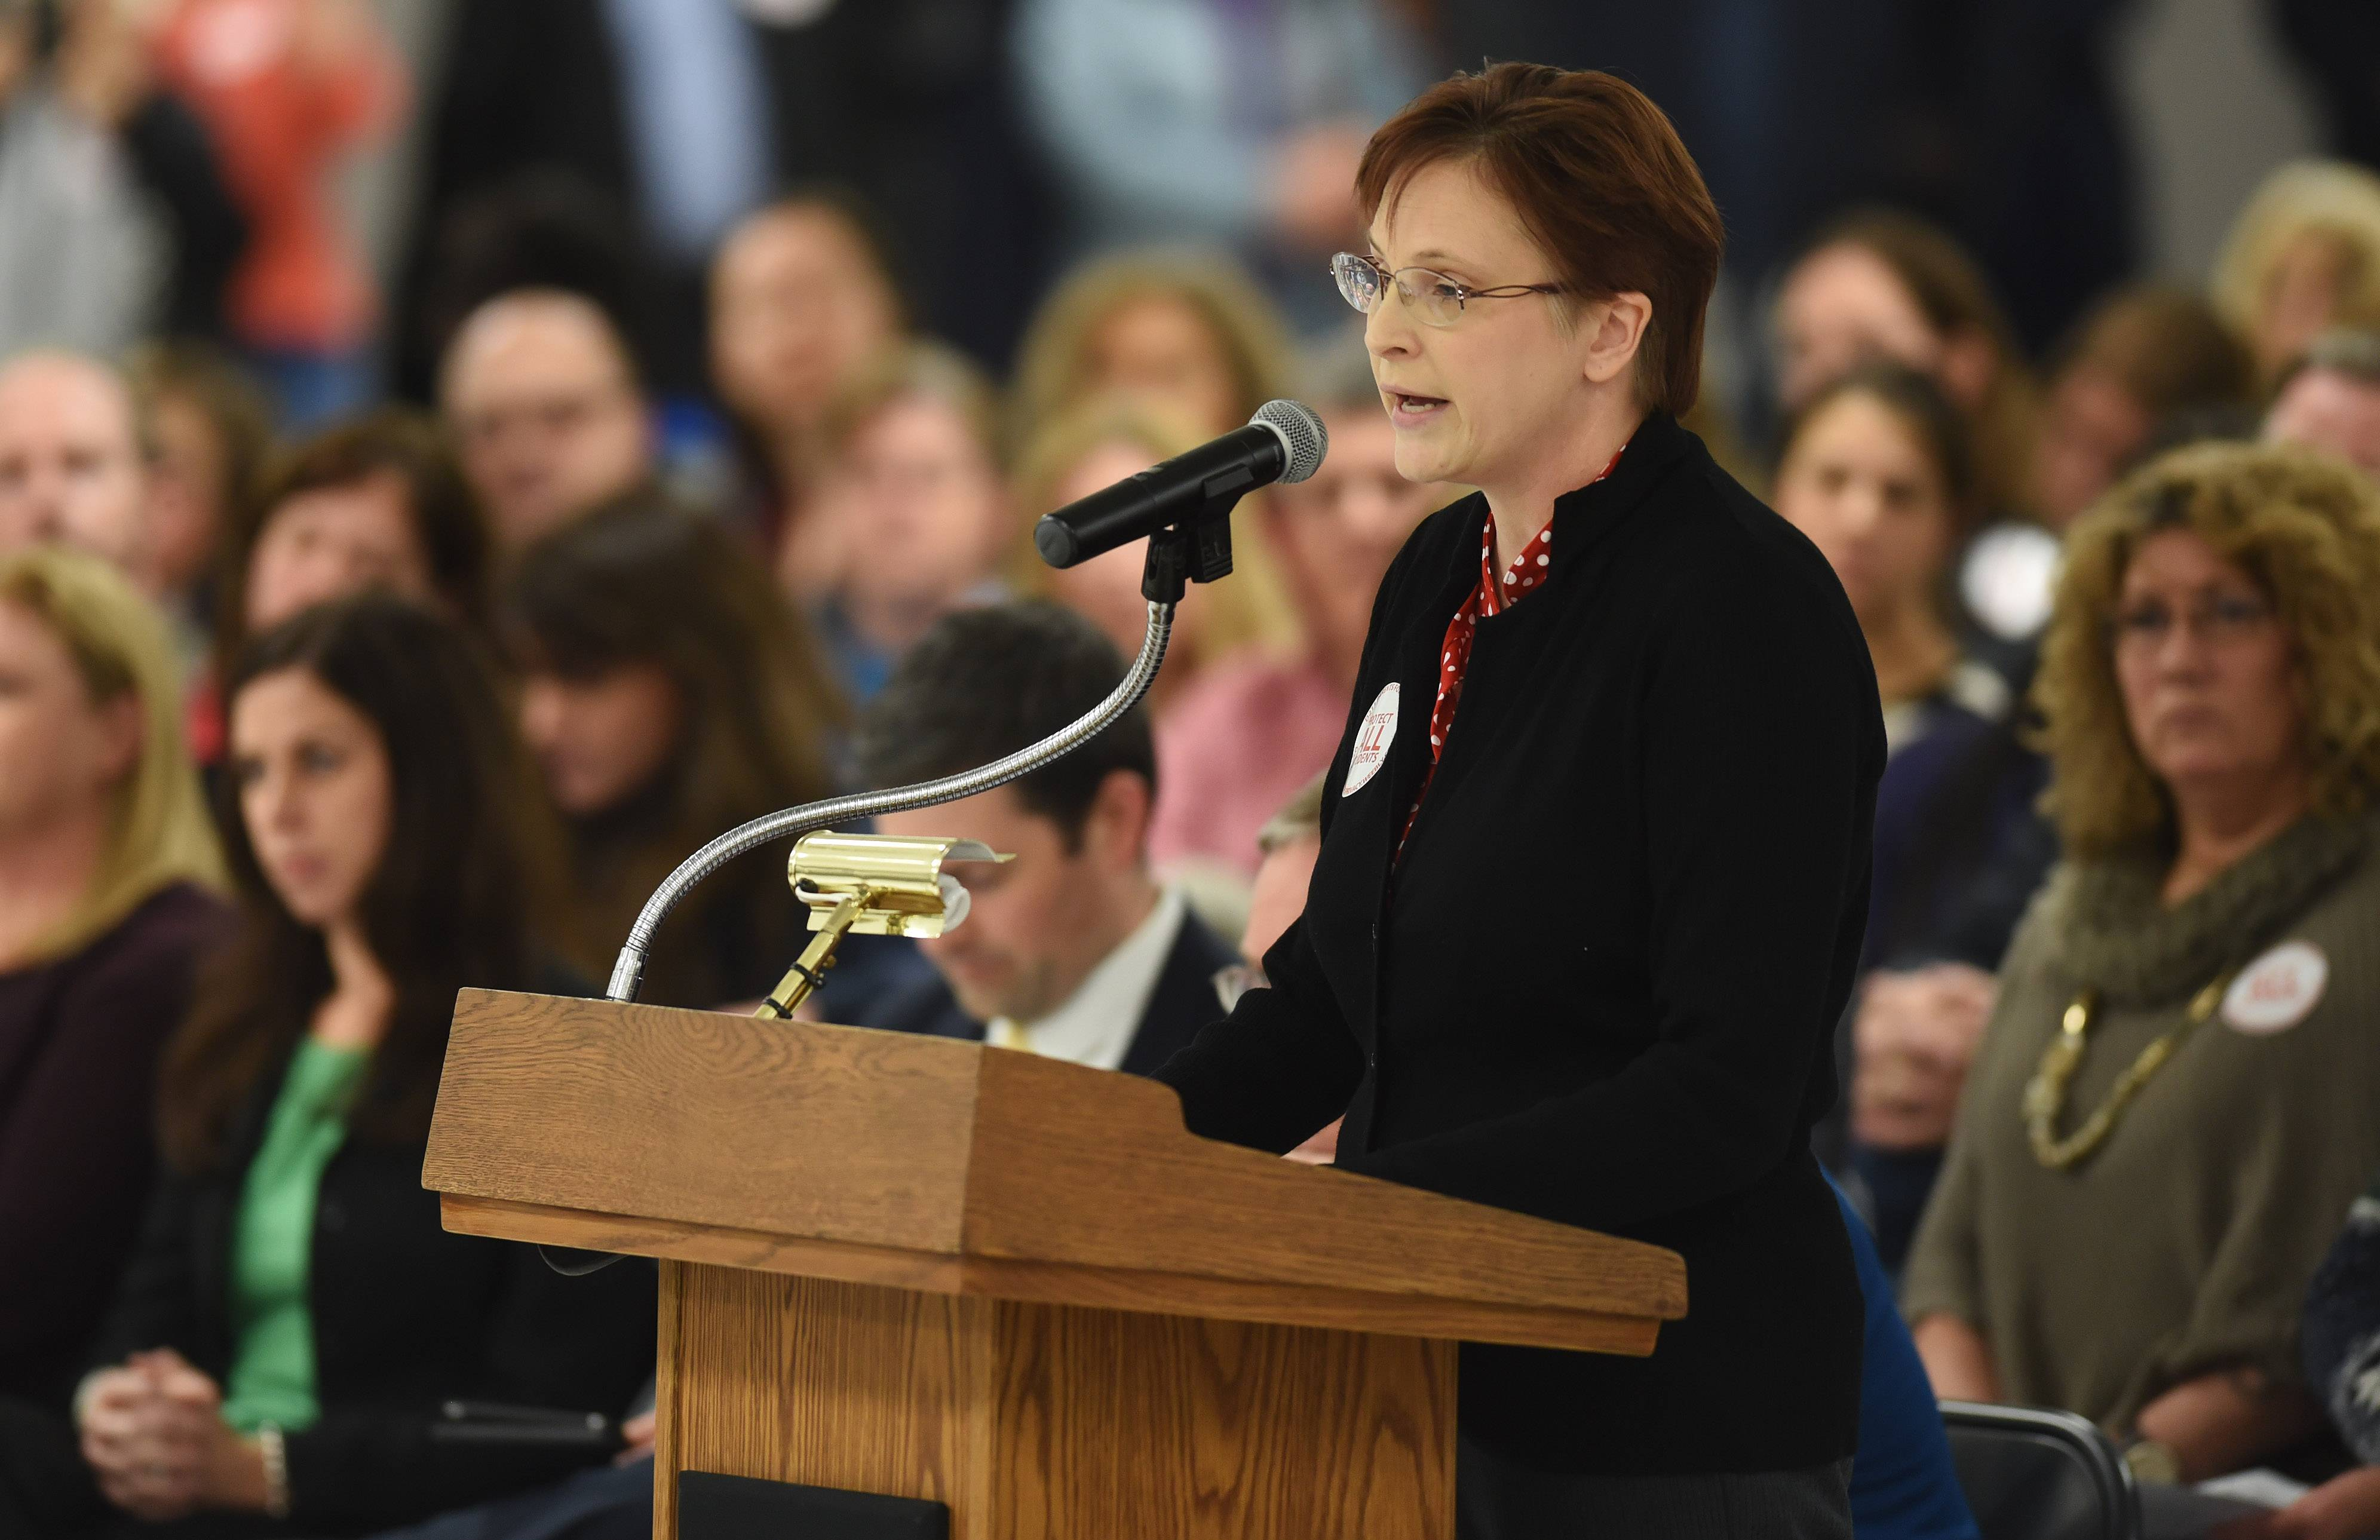 Lester: Families want law for uniform transgender student policies